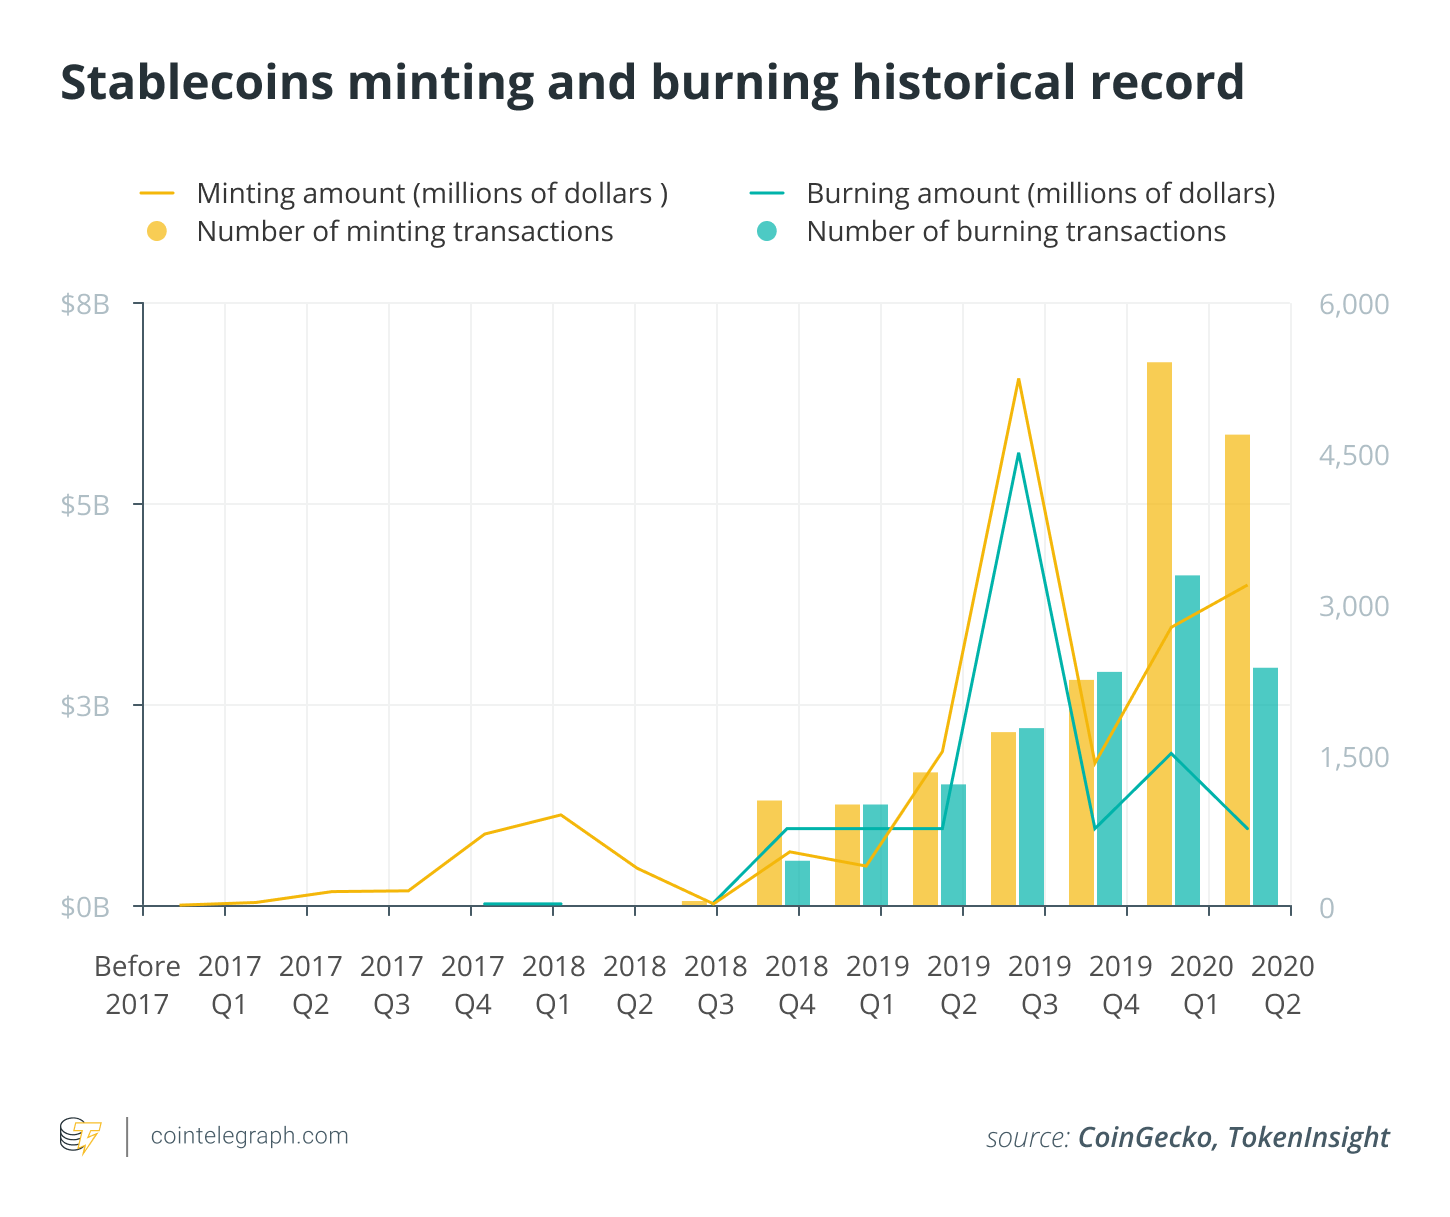 Stablecoins minting and burning historical record